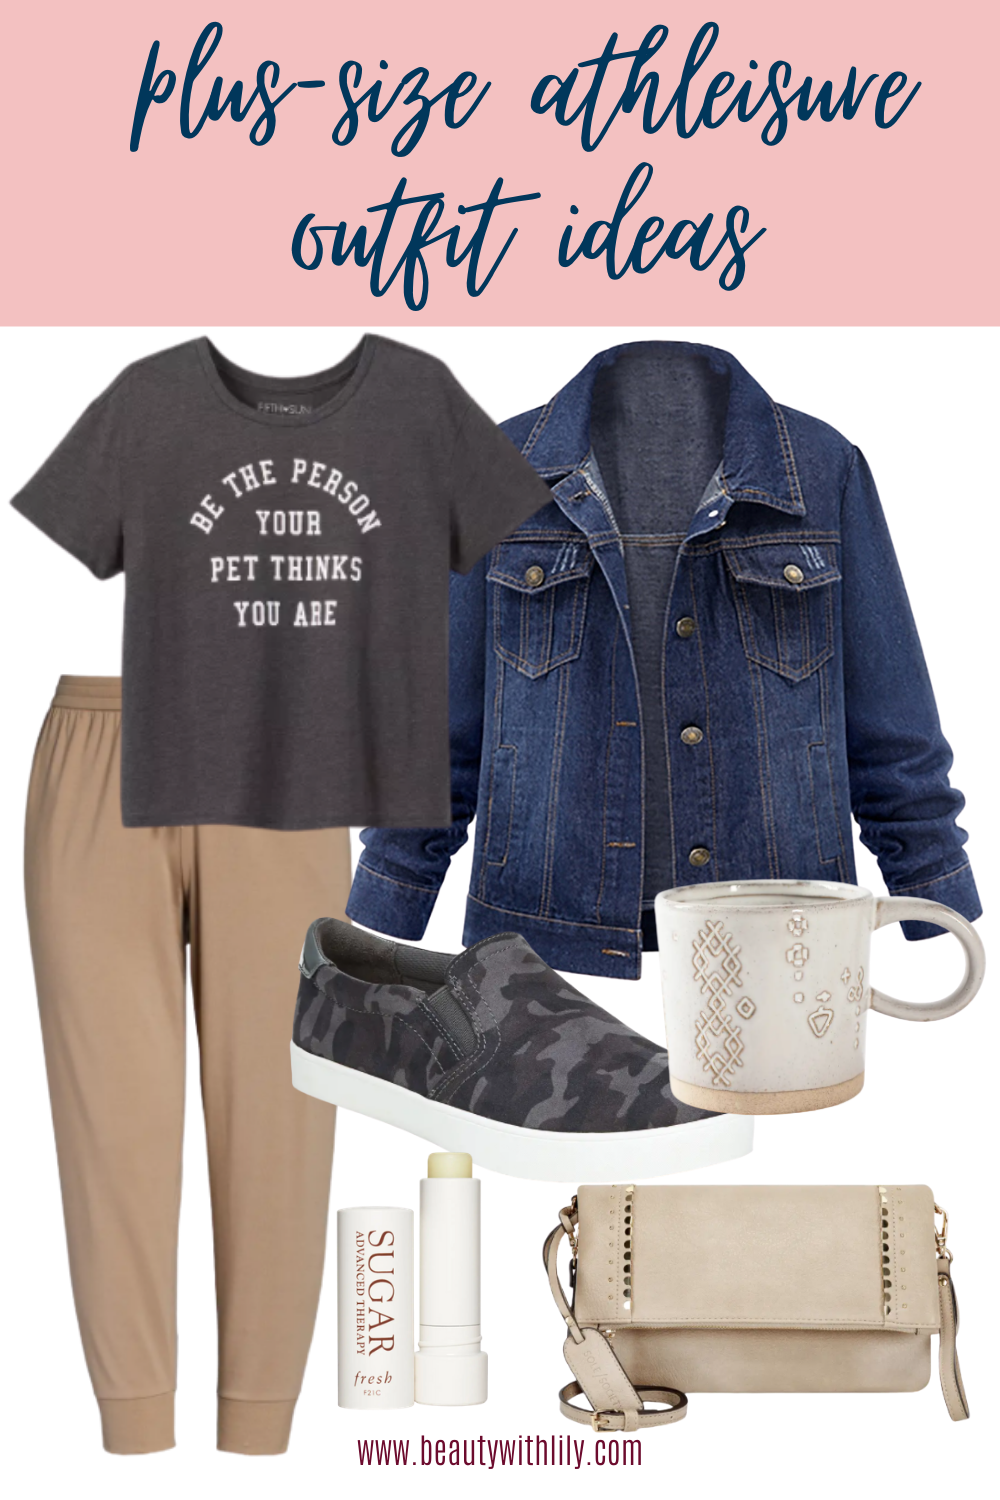 Athleisure Outfit Ideas // Plus Size Athleisure Outfit Ideas // Plus Size Outfit Ideas // Women's Fashion // Fall Fashion for Women // Summer to Fall Fashion // Cute Loungewear Outfits // Cozy Loungewear Ideas // Work From Home Outfits // Chic Loungewear Outfits | Beauty With Lily